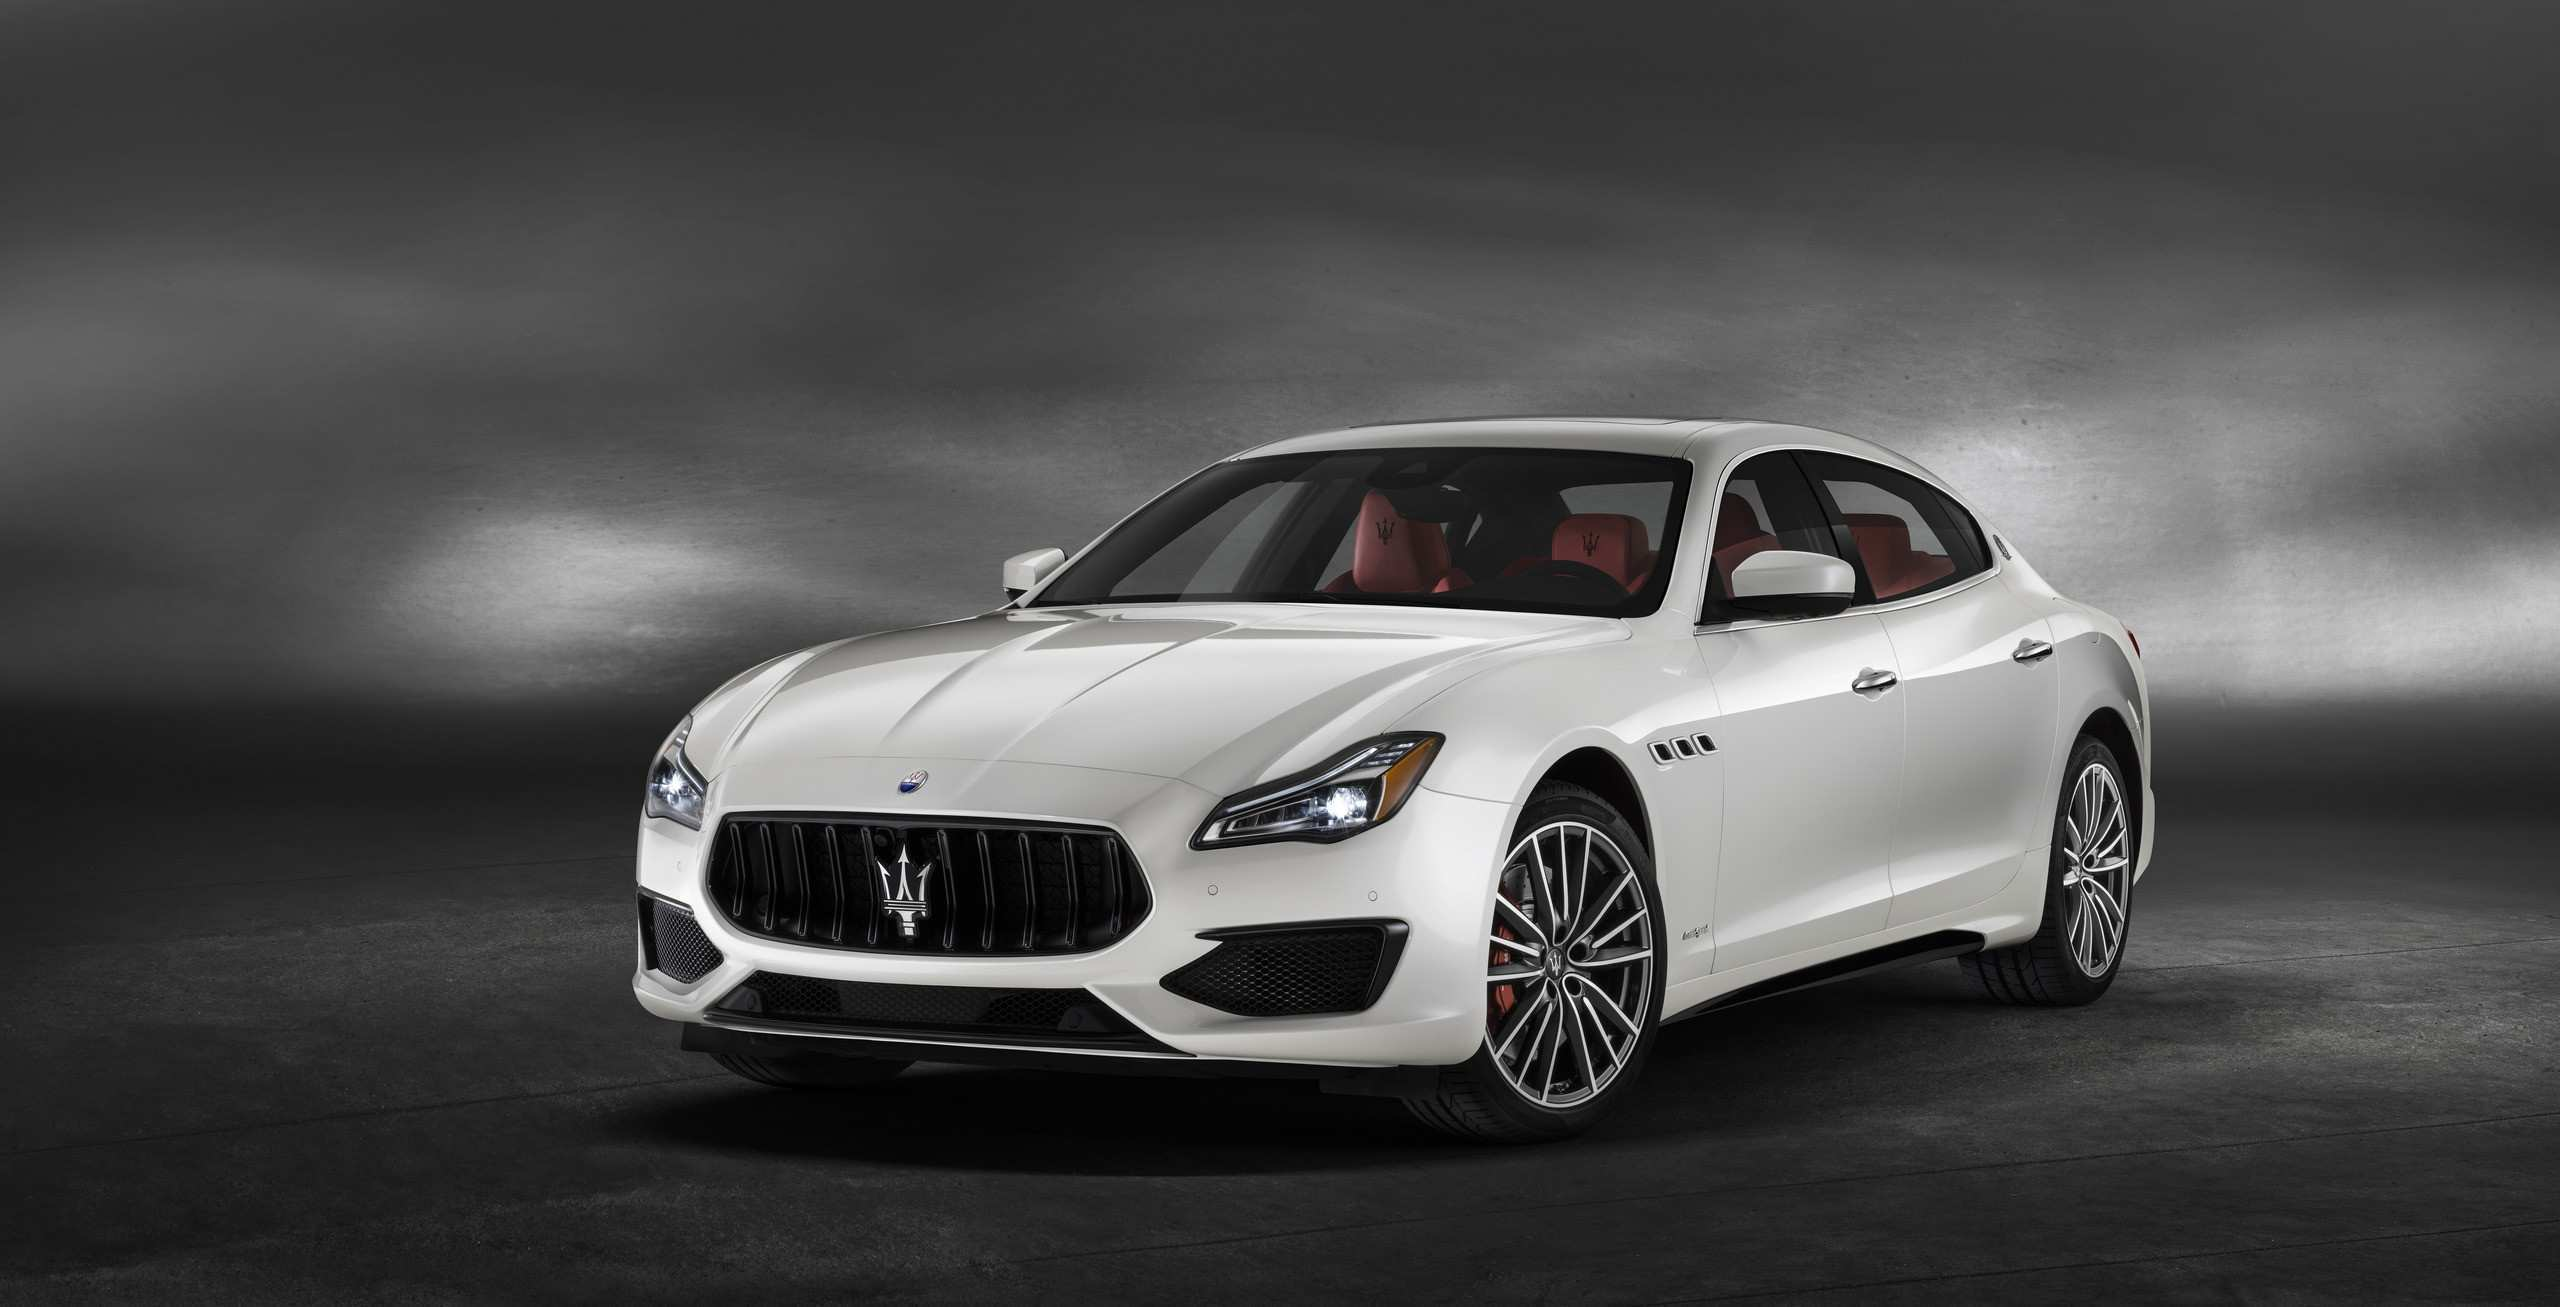 71 All New 2019 Maserati Granturismo Redesign And Review